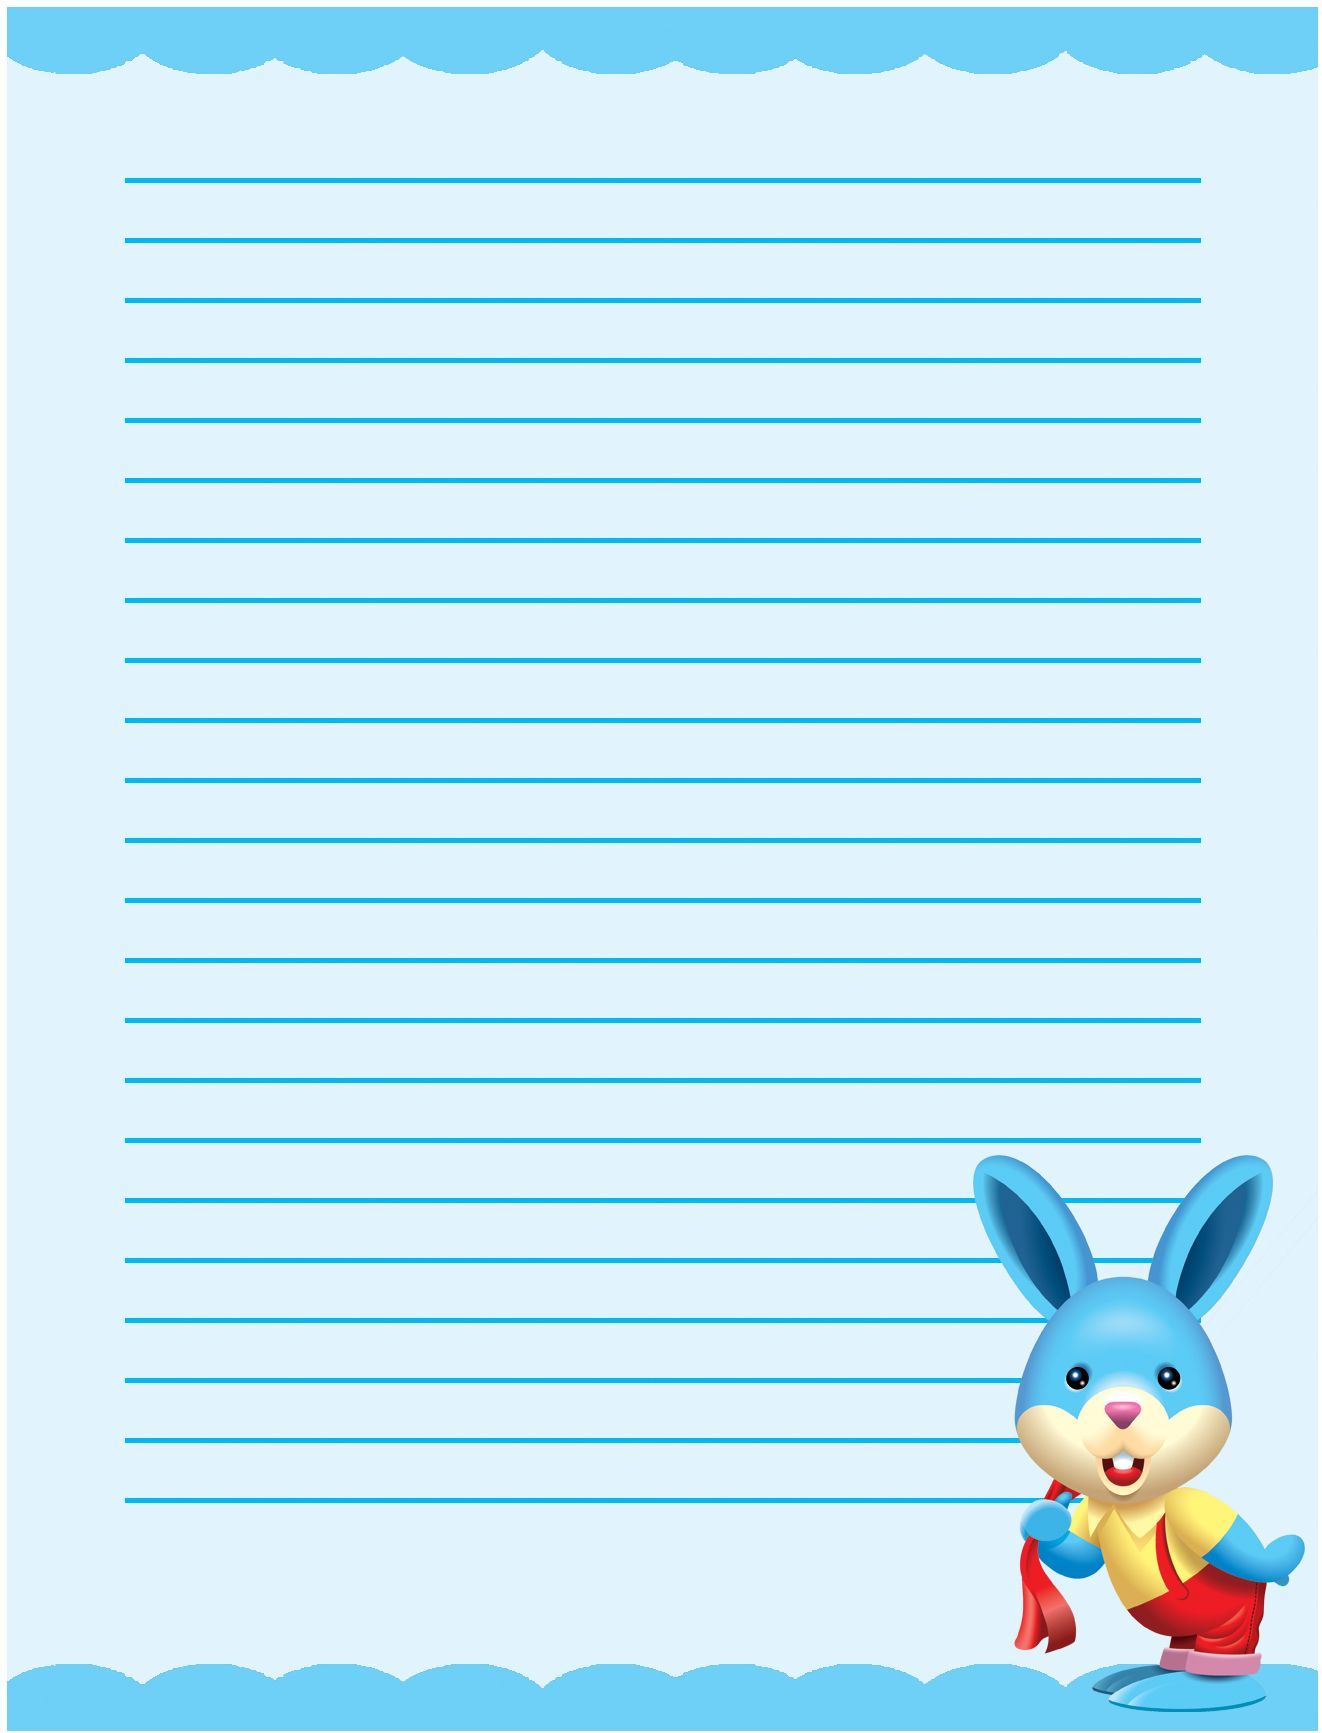 Free Printable Writing Paper Free Stationery Templates For School